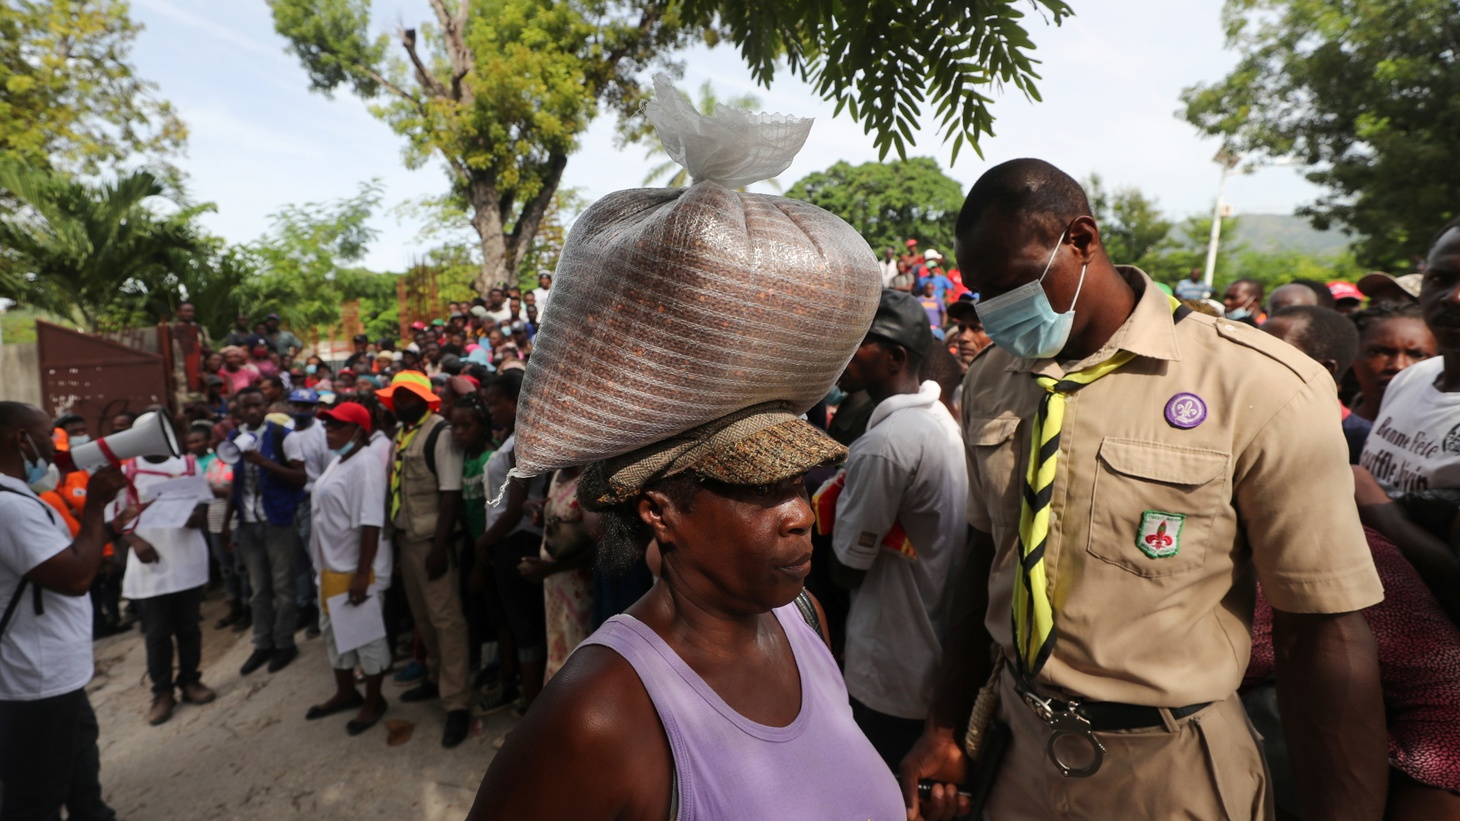 Camp Perrin residents receive food from the World Food Programme (WFP) in Camp Perrin near Les Cayes, after the earthquake that took place on August 14, in Haiti. August 19, 2021.